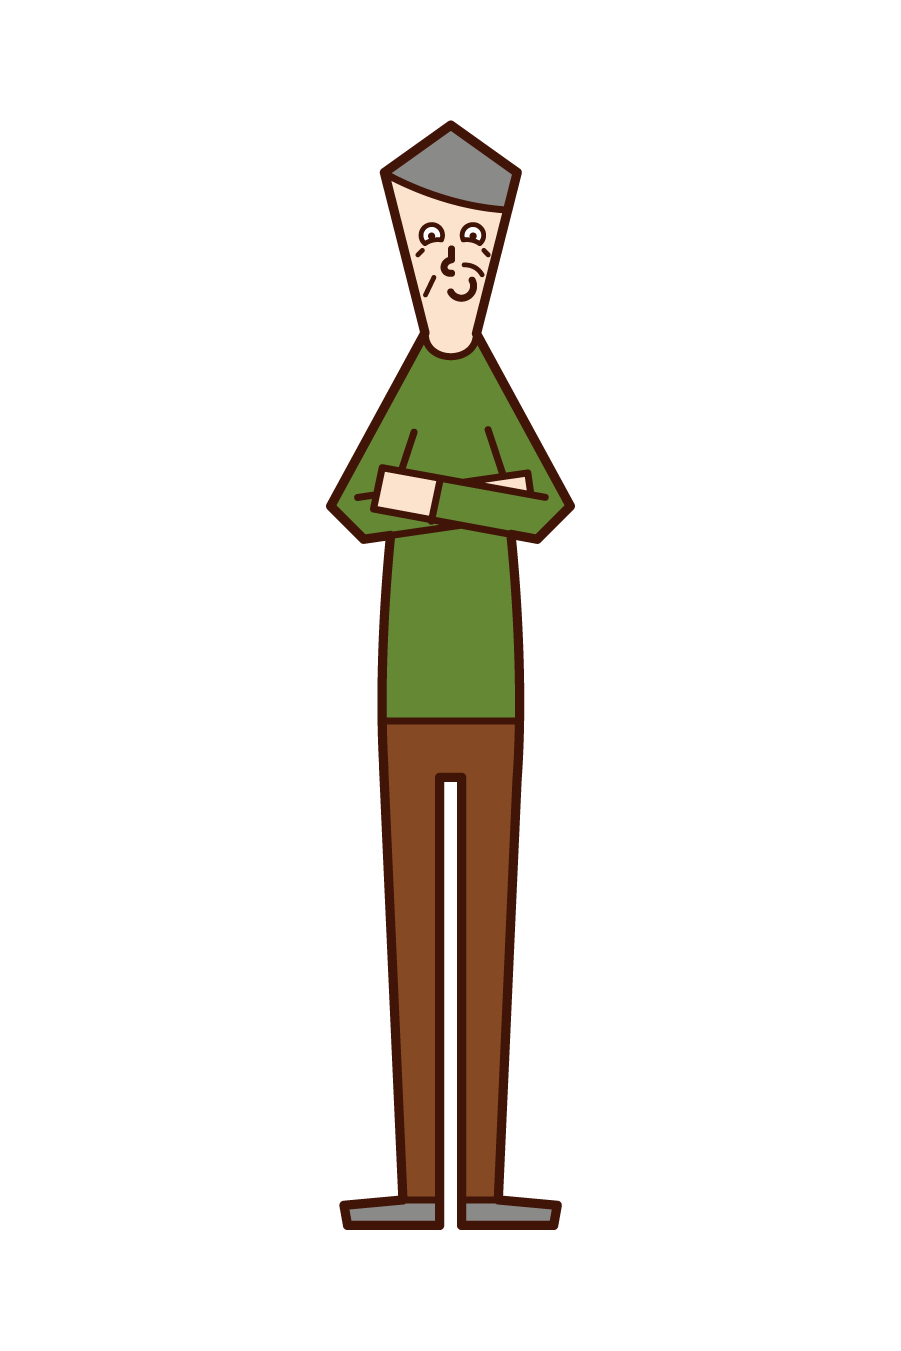 Illustration of an old man looking down